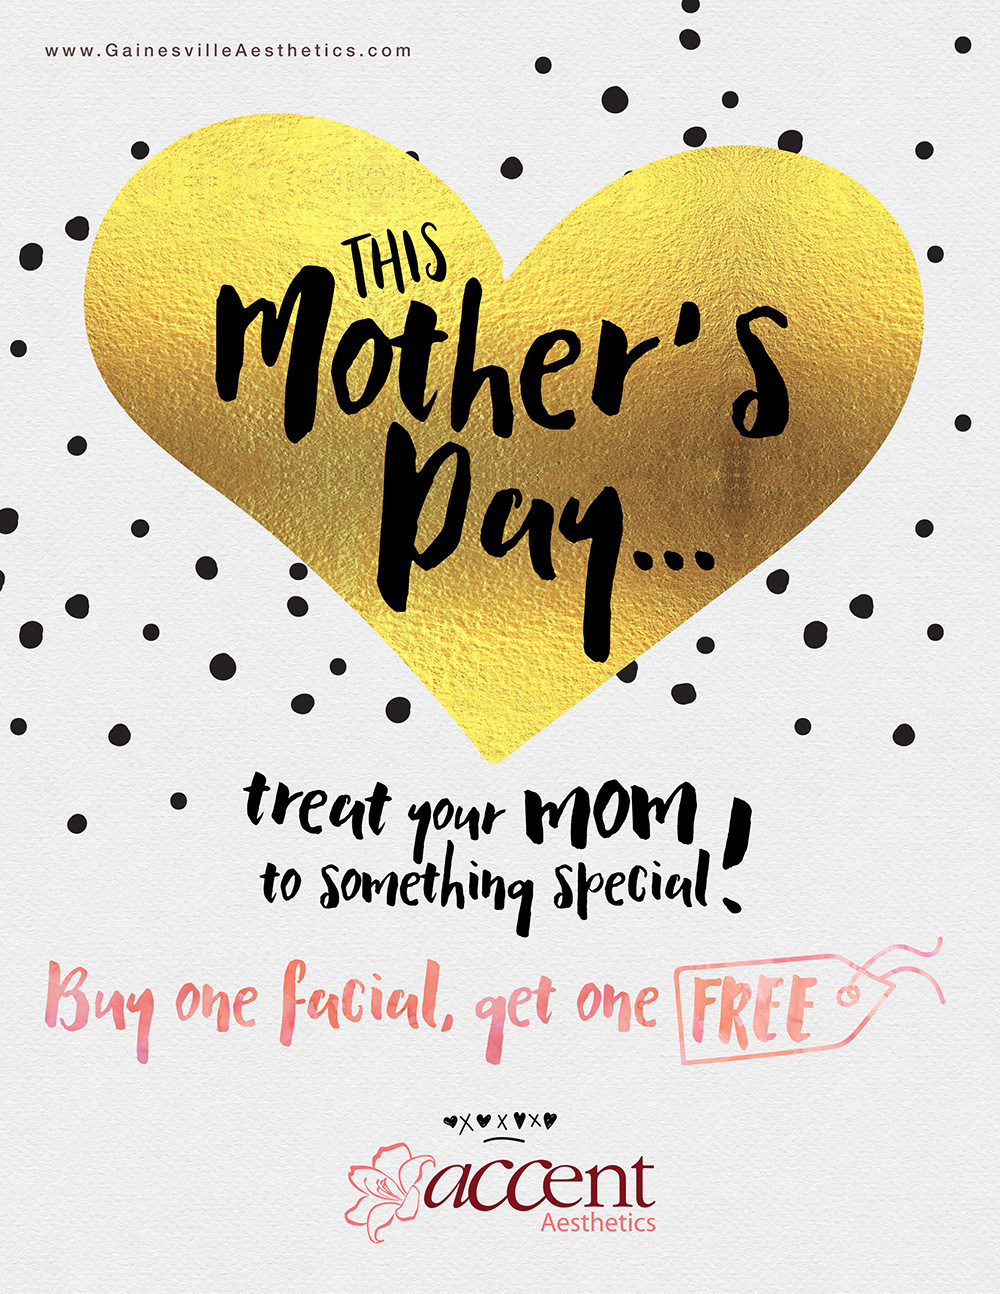 Mother's Day Special 2016 - Accent Aesthetics in Gainesville FL